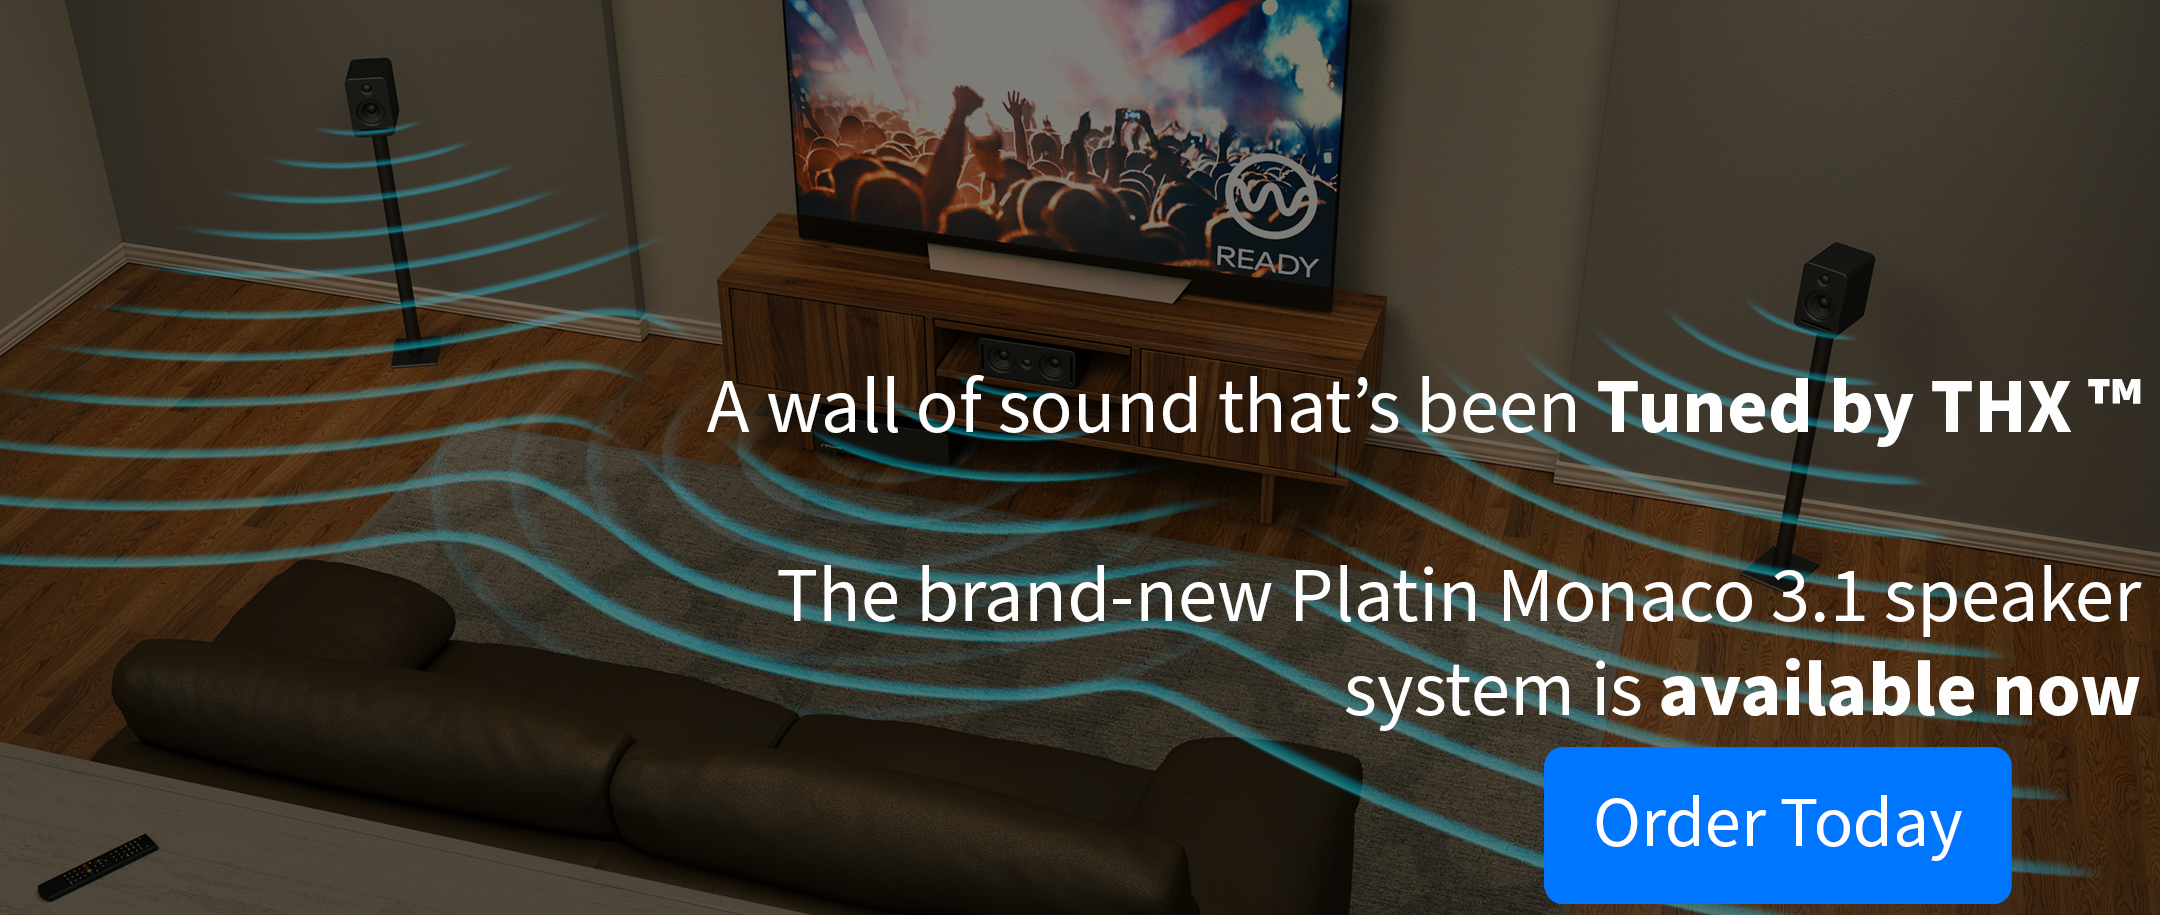 Tuned by THX Platin Monaco 3.1 Speaker system connected to a TV